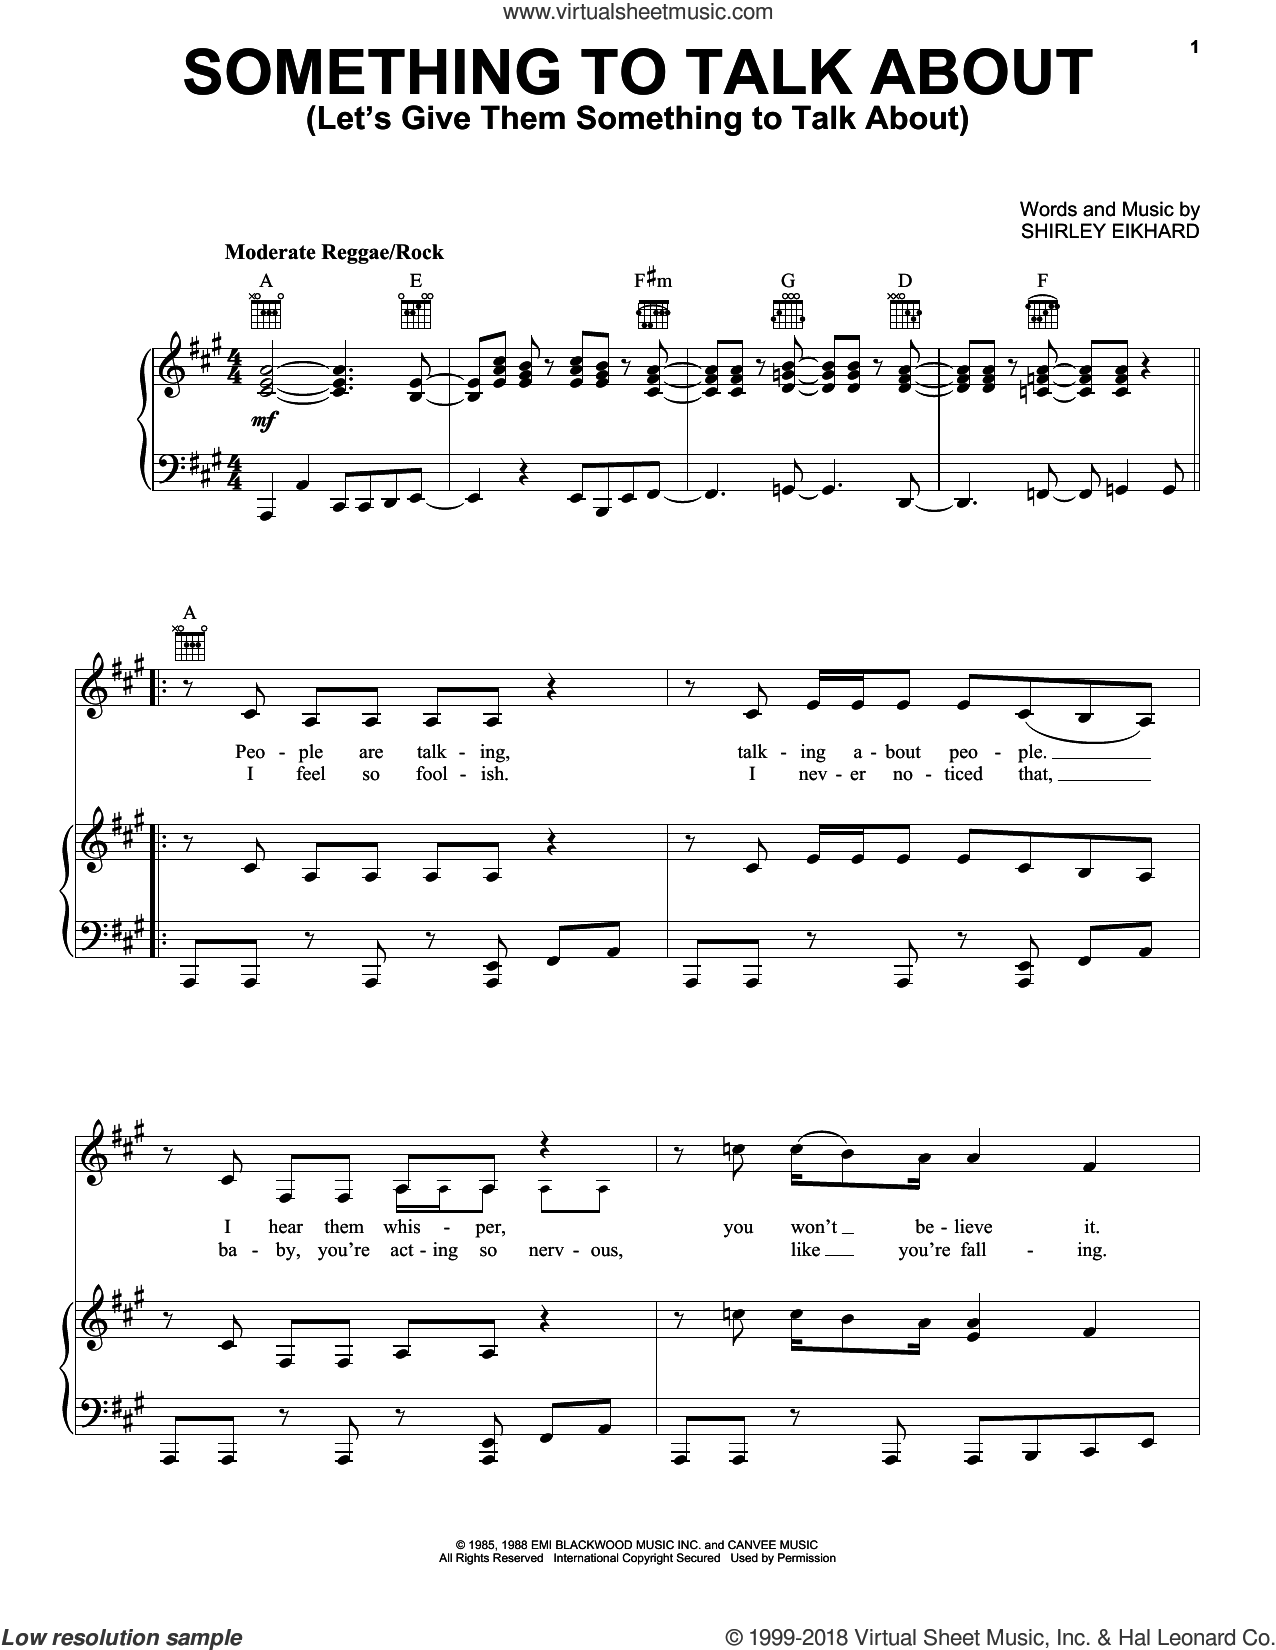 Something To Talk About (Let's Give Them Something To Talk About) sheet music for voice, piano or guitar by Bonnie Raitt and Shirley Eikhard, intermediate skill level